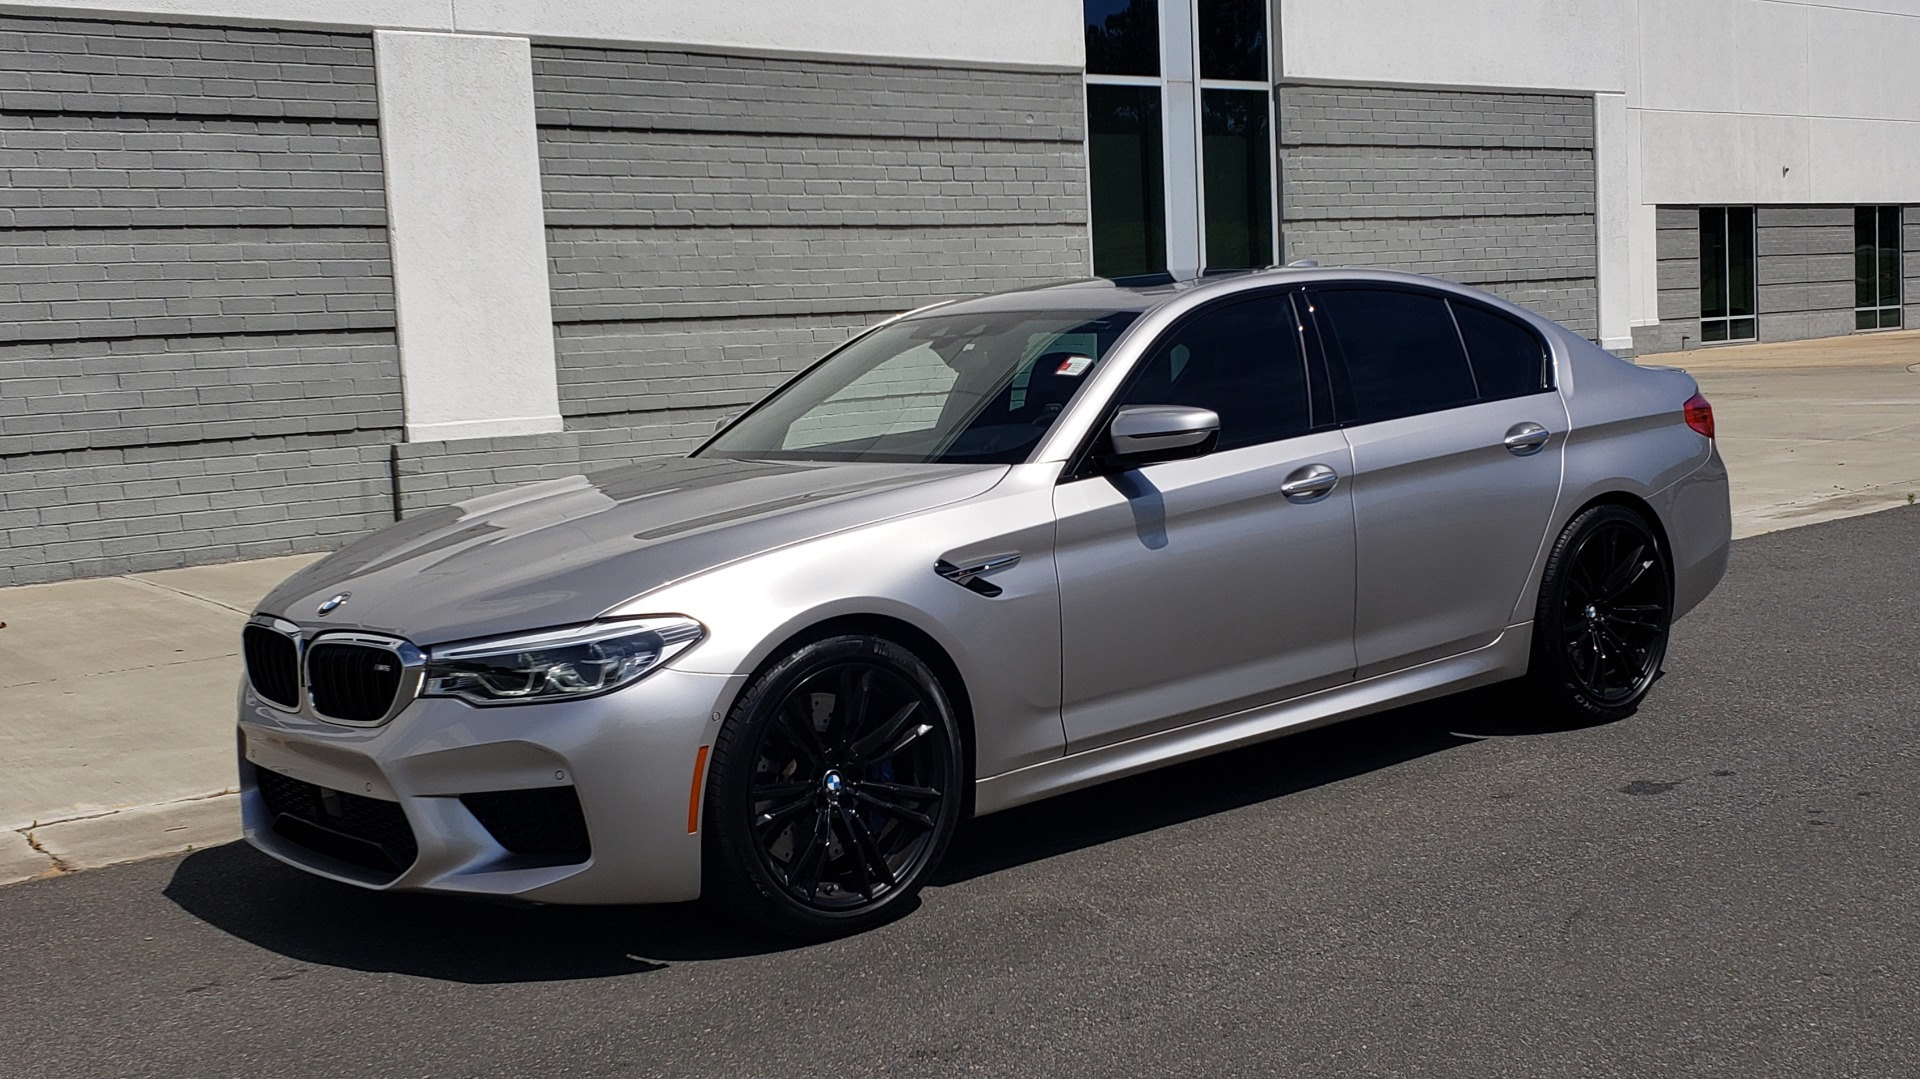 Used 2018 BMW M5 SEDAN / EXEC PKG / DRVR ASST PLUS / MOONROOF / B&W SND for sale $81,495 at Formula Imports in Charlotte NC 28227 4